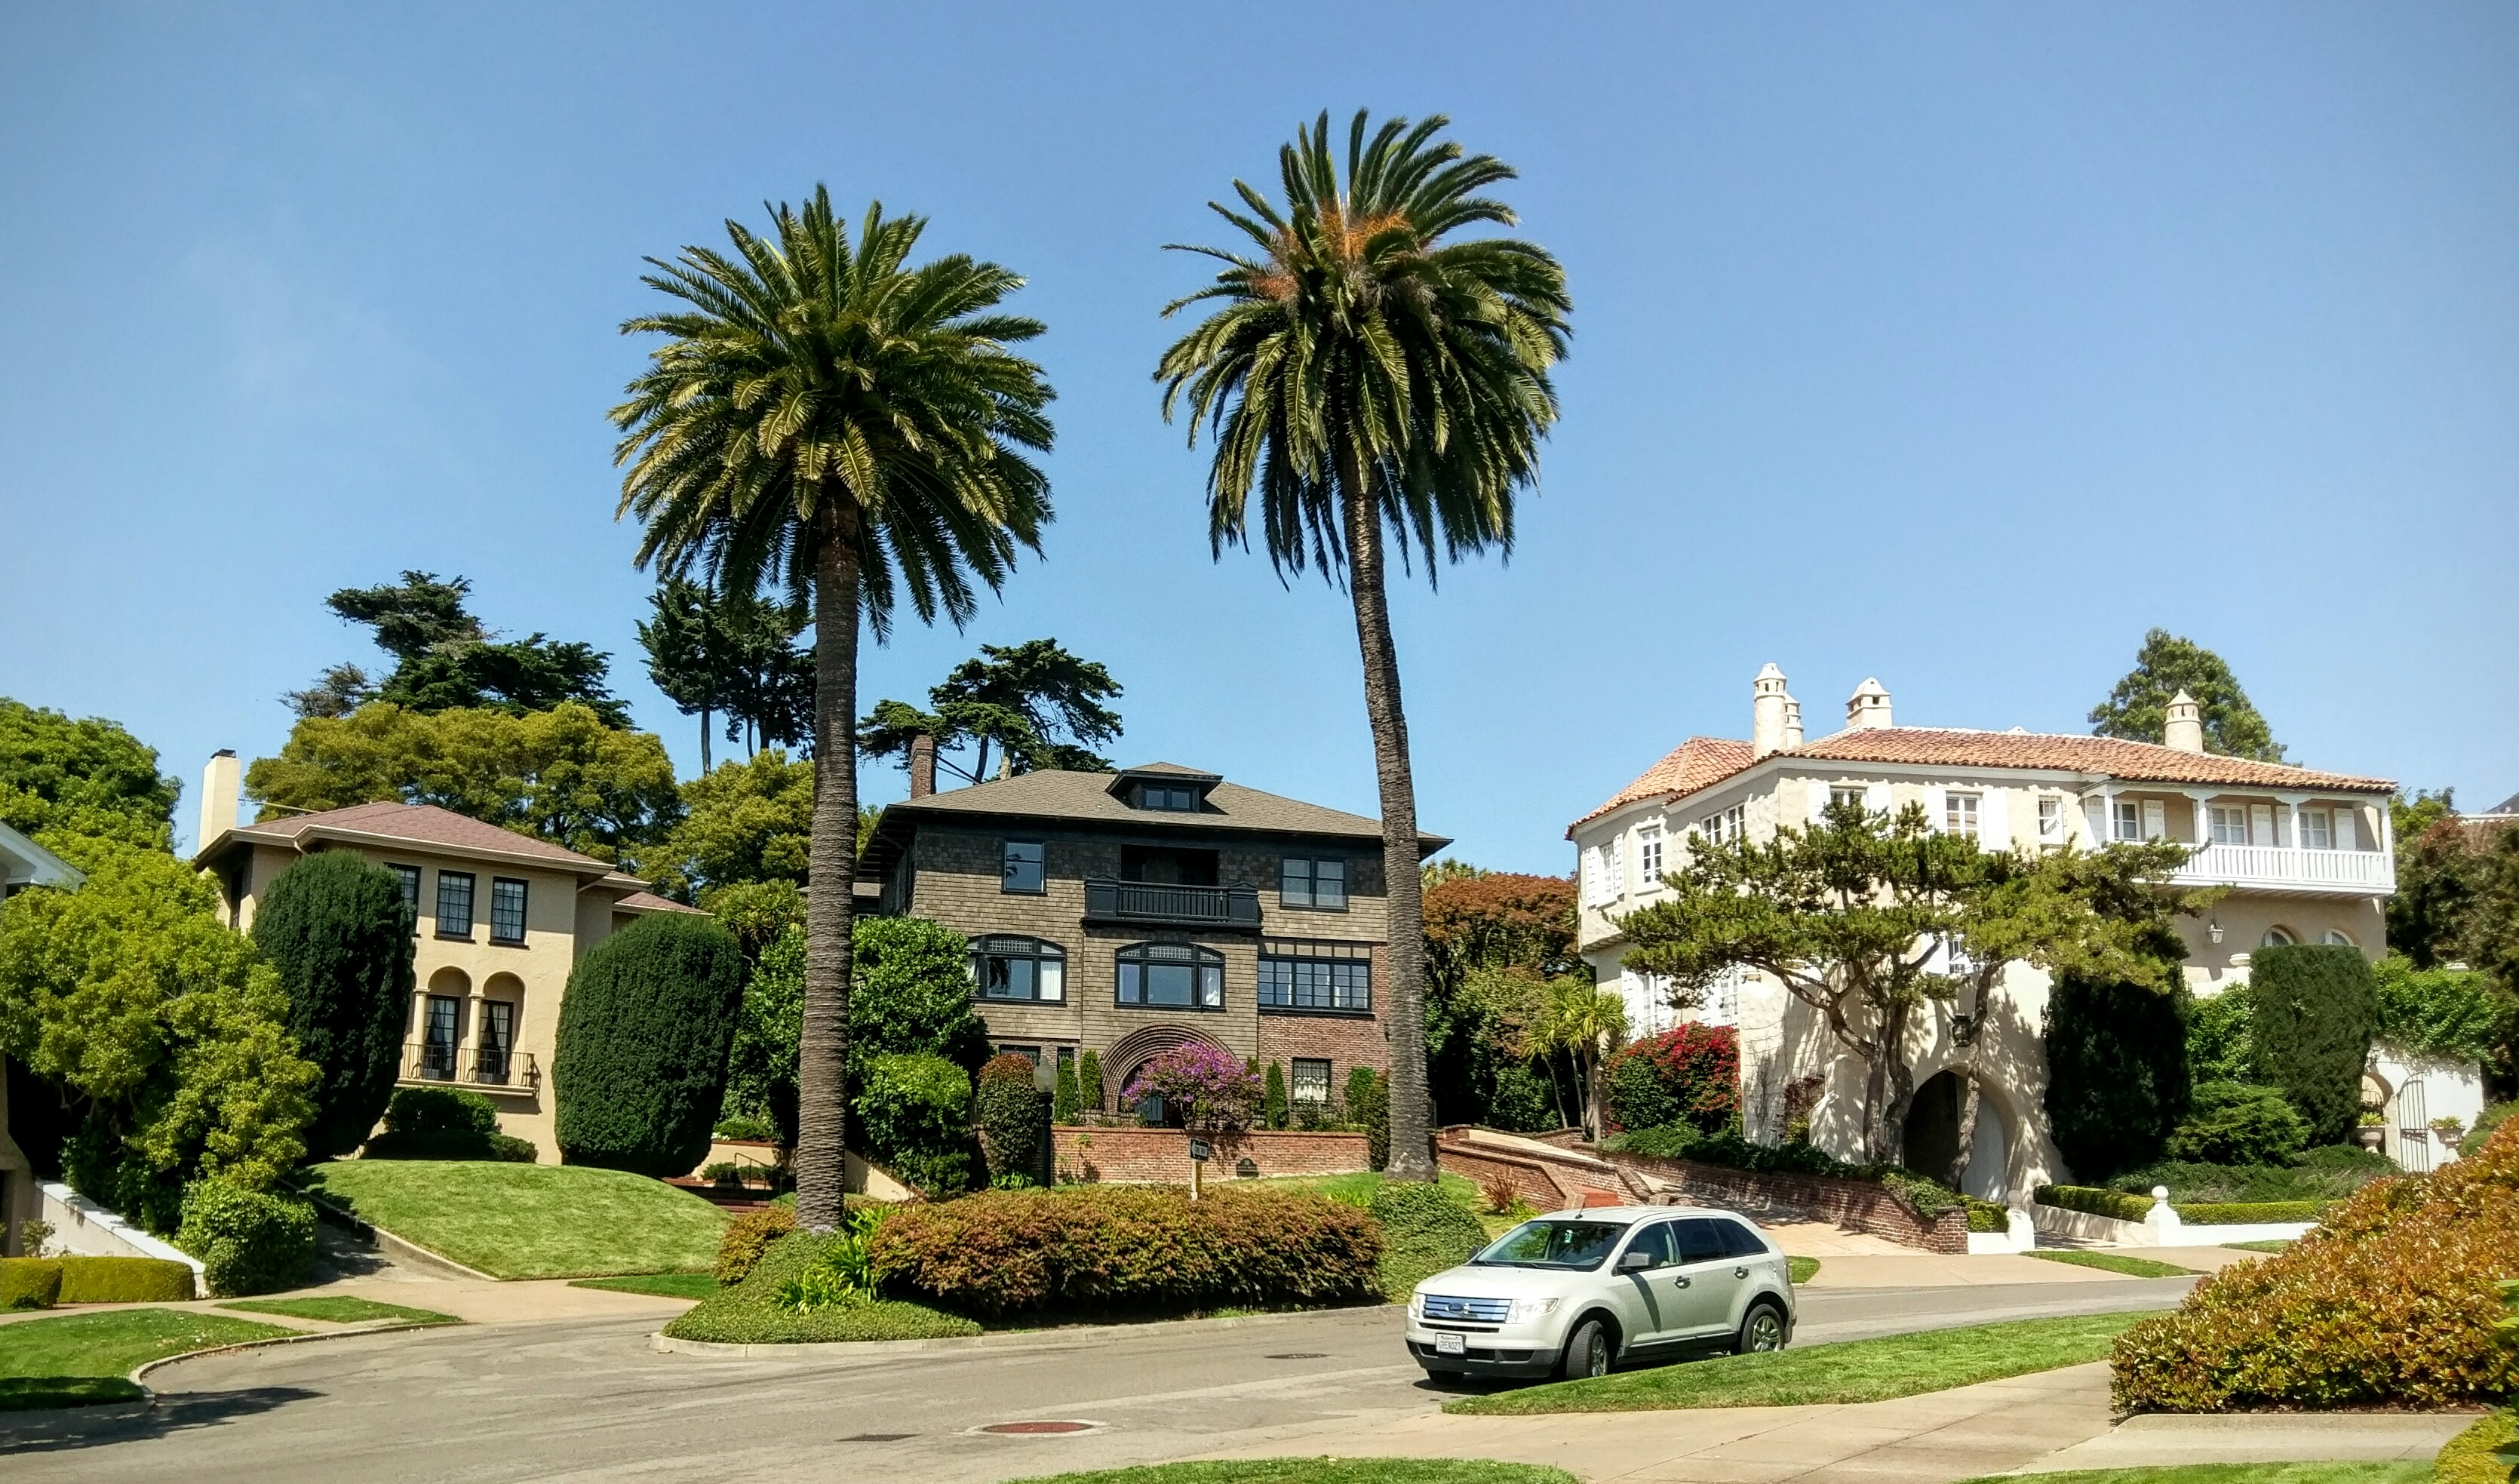 Expensive homes and palm trees in Presidio Terrace.